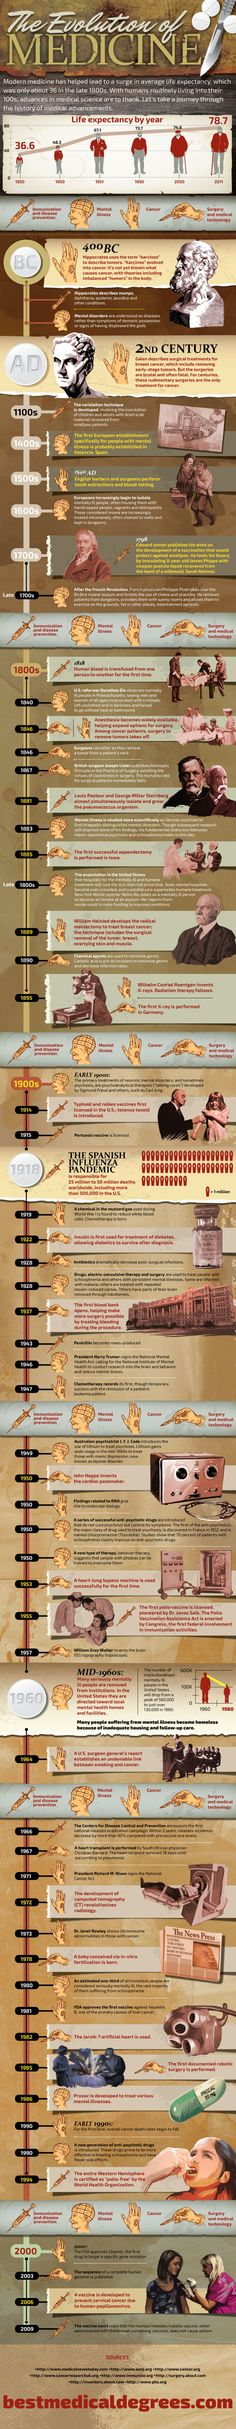 The Evolution of Medicine | A Health Education Infographic | BerryRipe.com